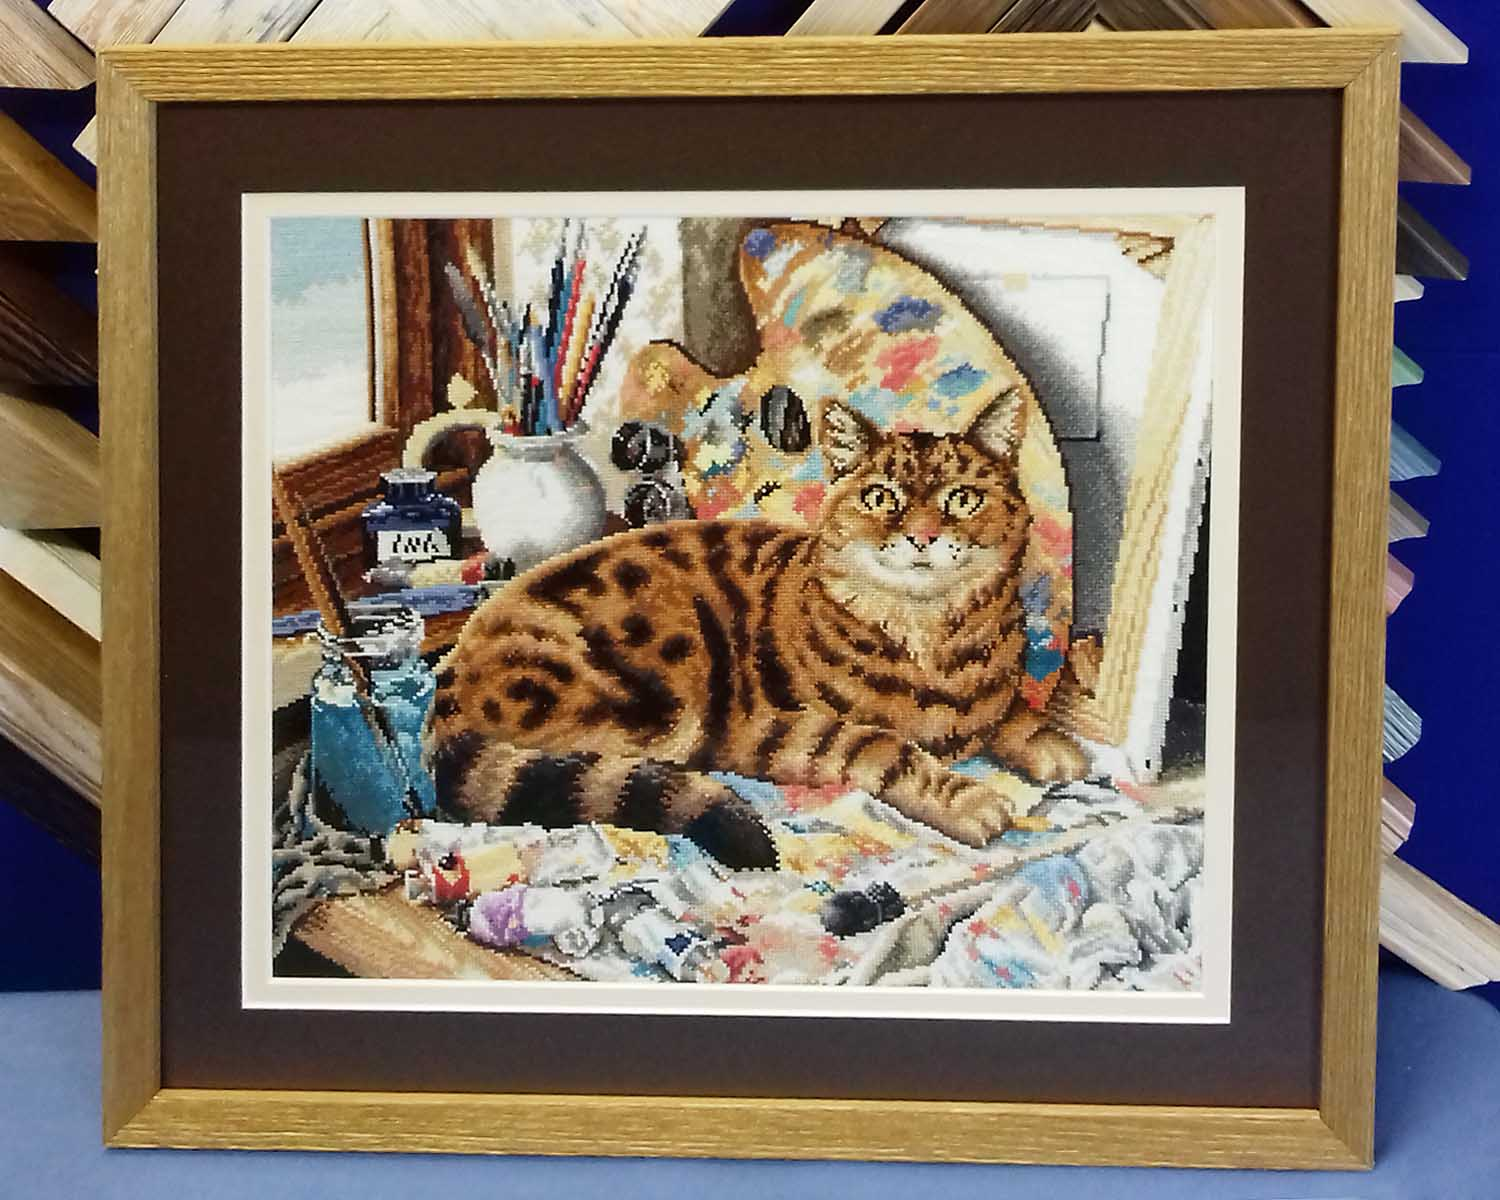 Needlework framing - tapestries, cross stitches, embroideries.